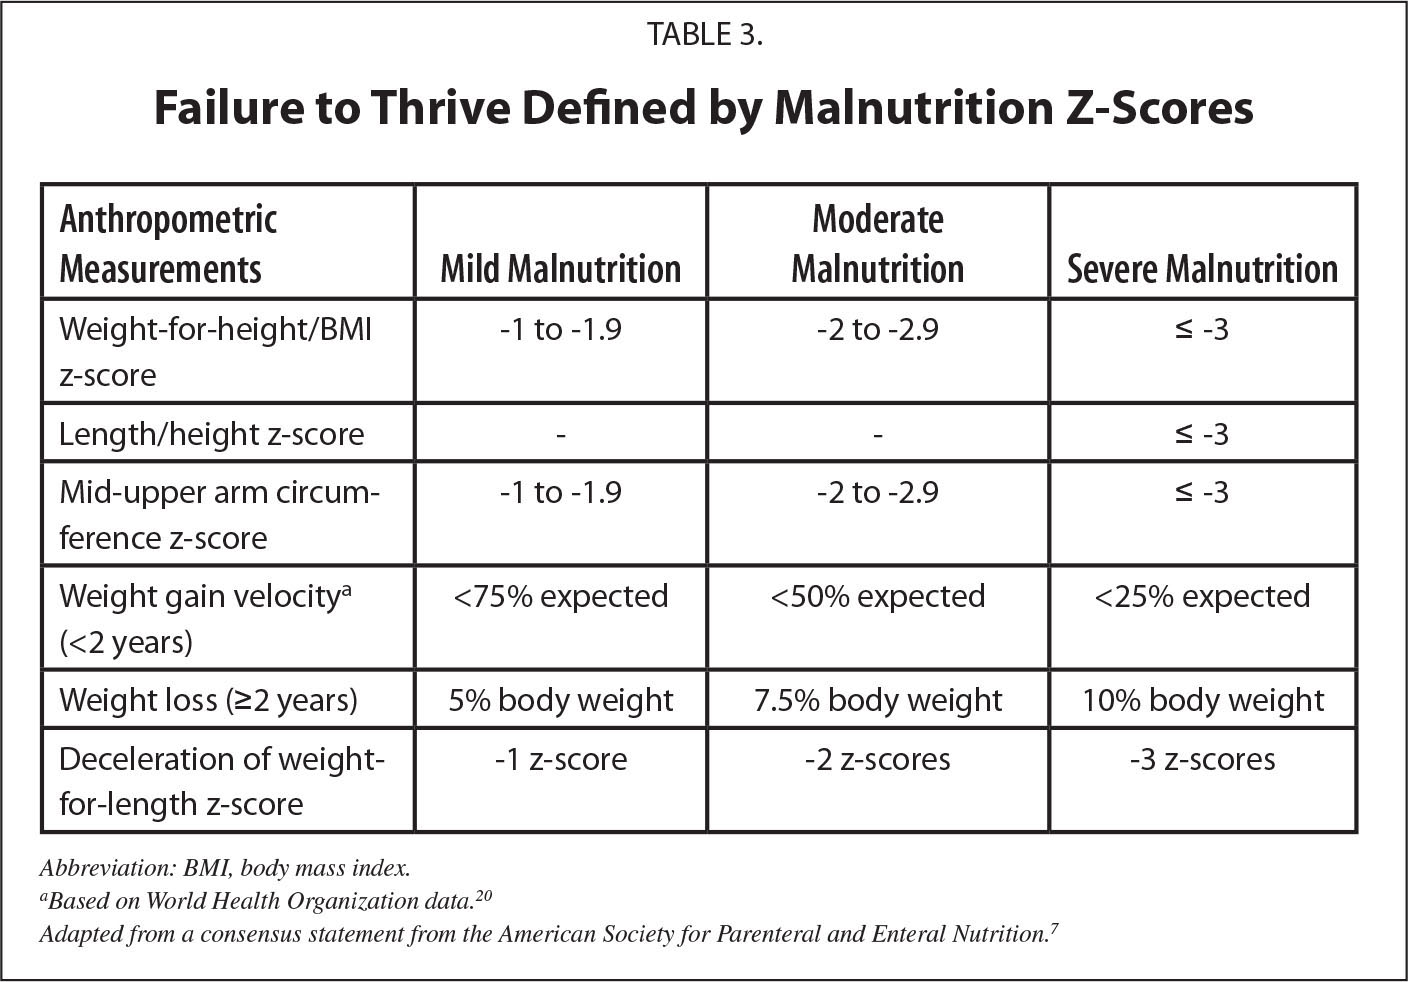 Failure to Thrive Defined by Malnutrition Z-Scores